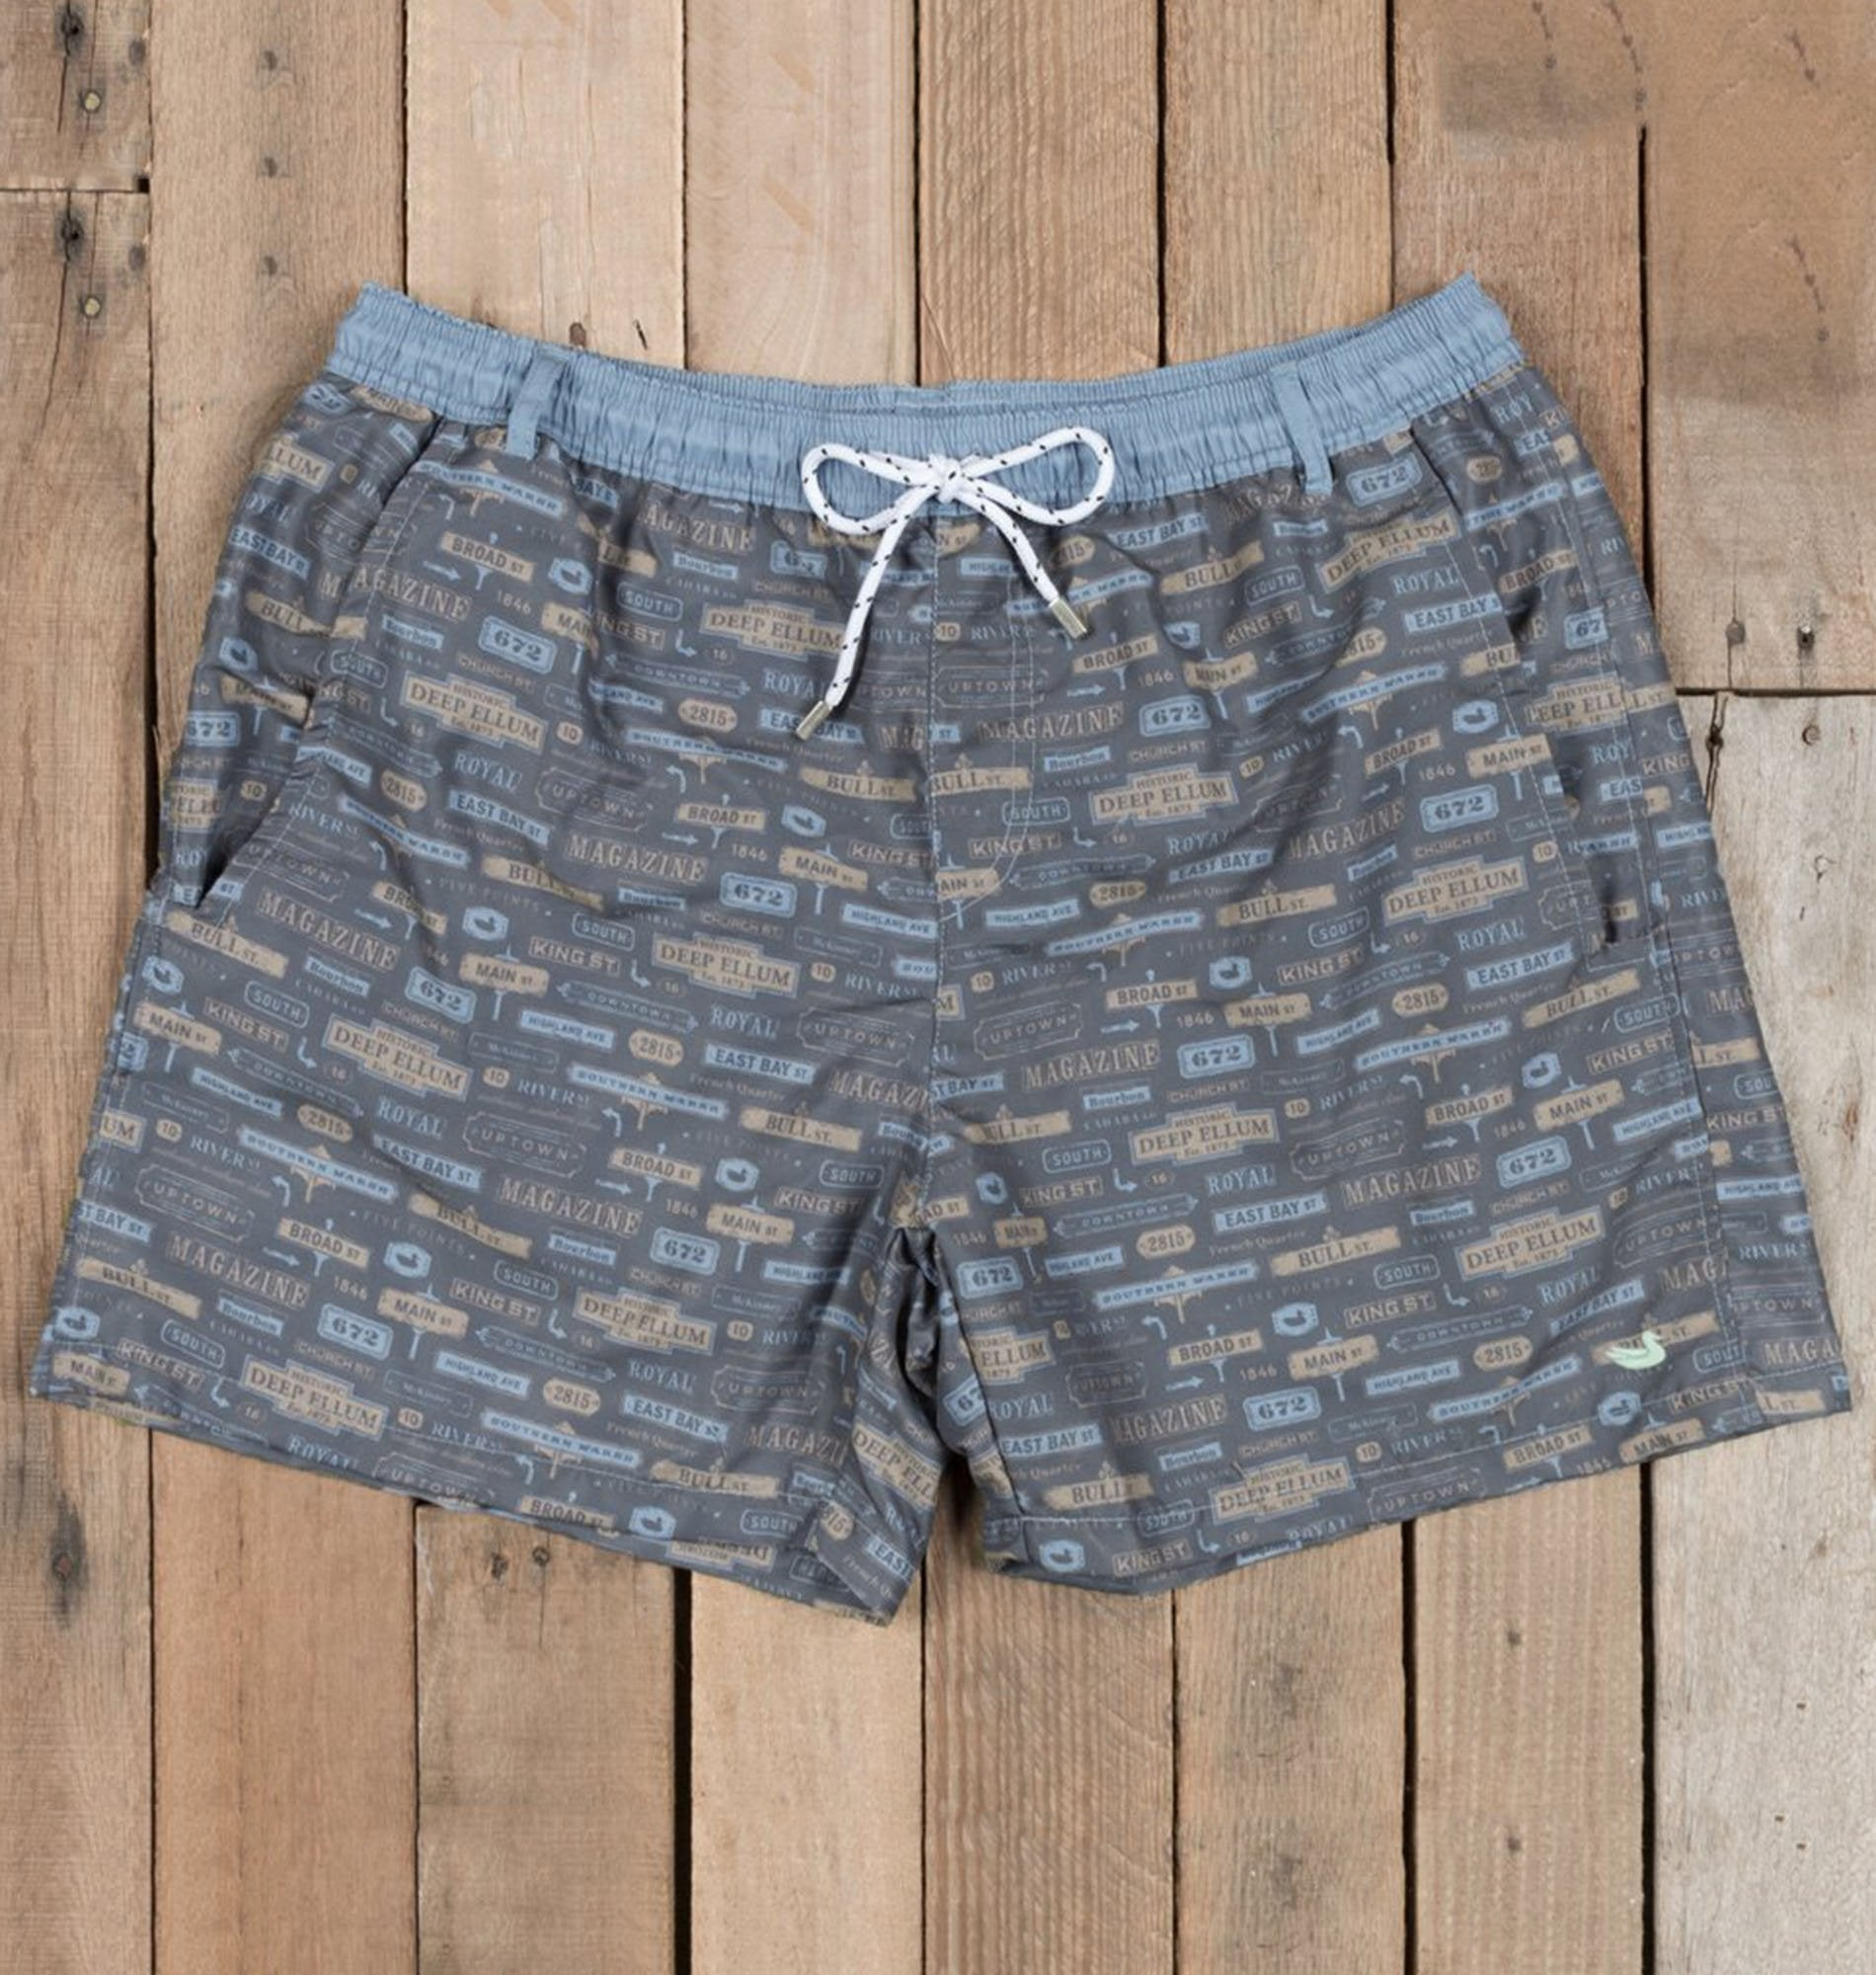 a9bacc3c5de84 Southern Marsh MEN - SWIM Southern Marsh, Dockside Swim Trunk - Avenues,  Navy ...